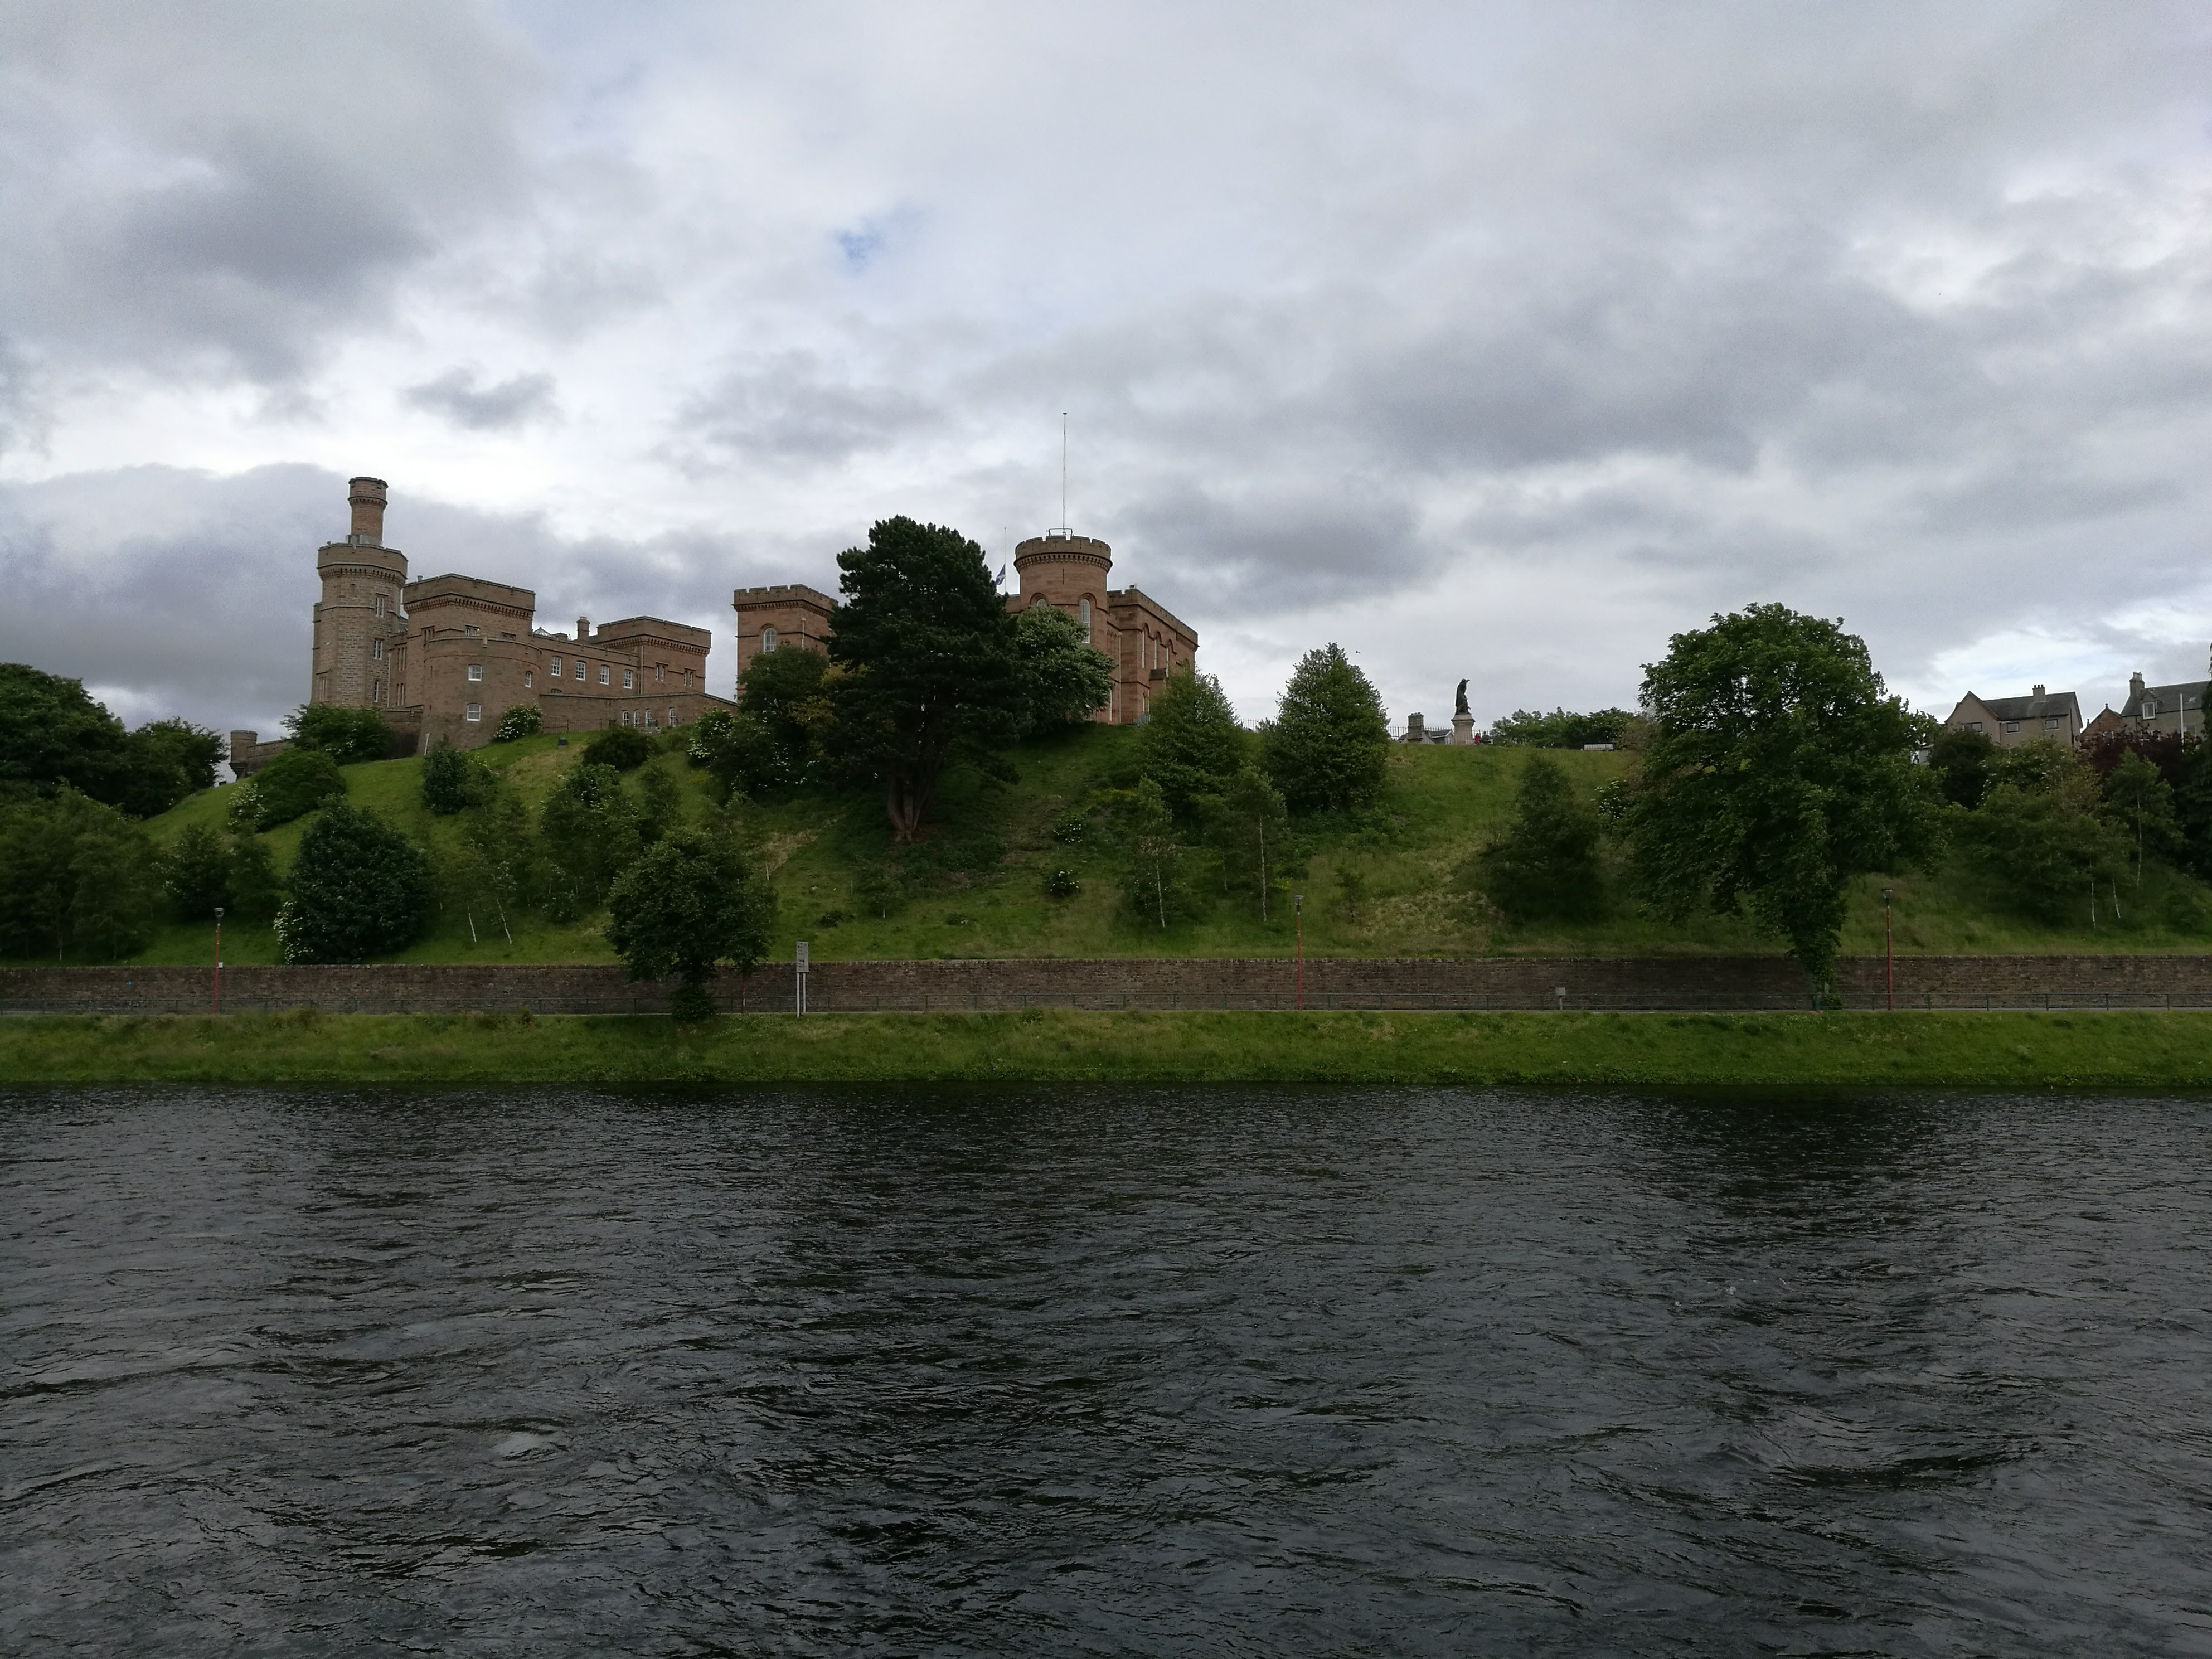 The castle at Inverness